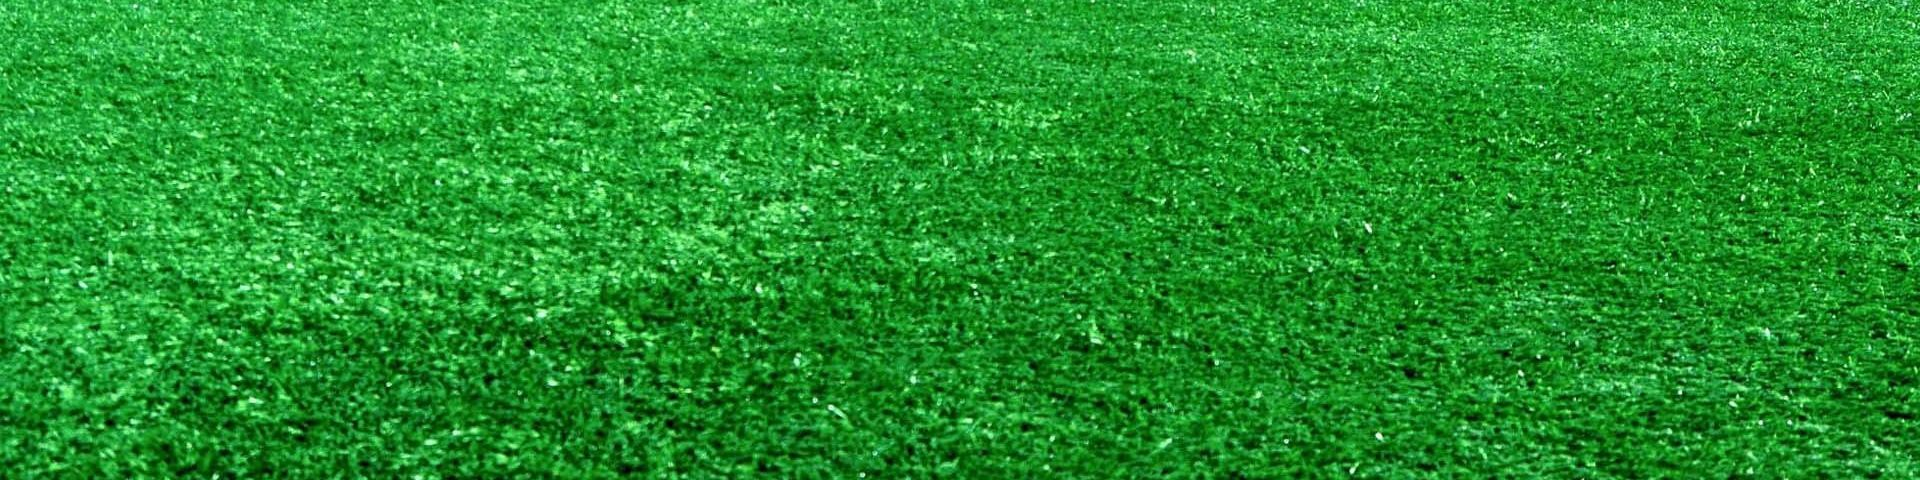 A close-up of the grass on a football pitch.